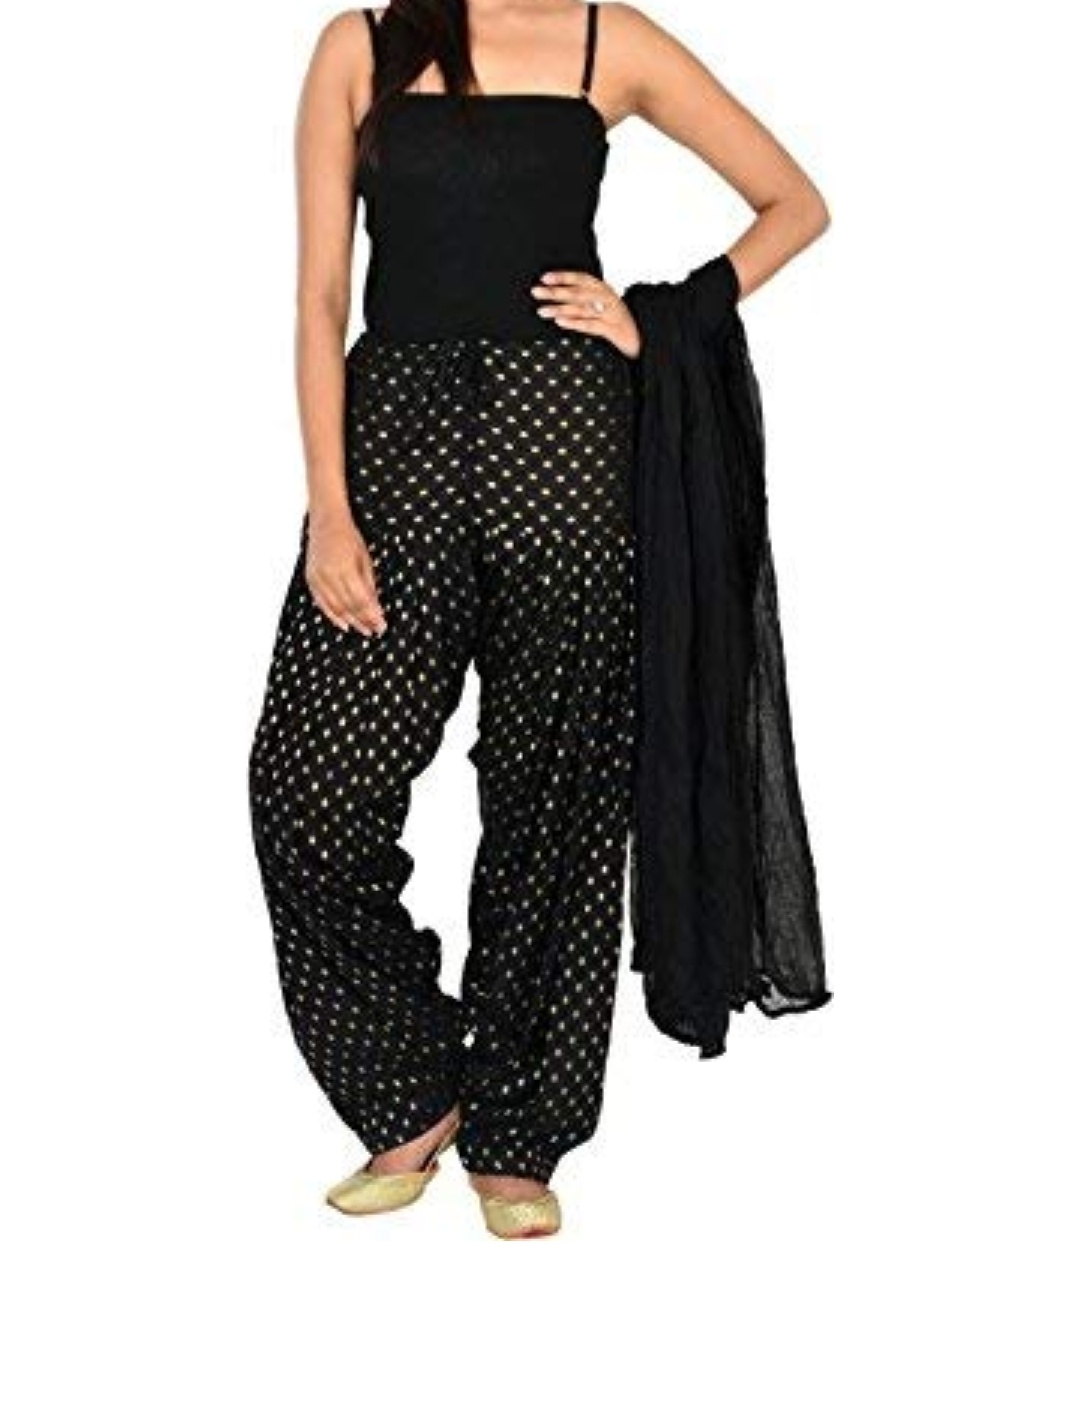 Samridhi Collections Combo Of Women's Cotton Patiala And Dupptta Golden Booti Work (Black)